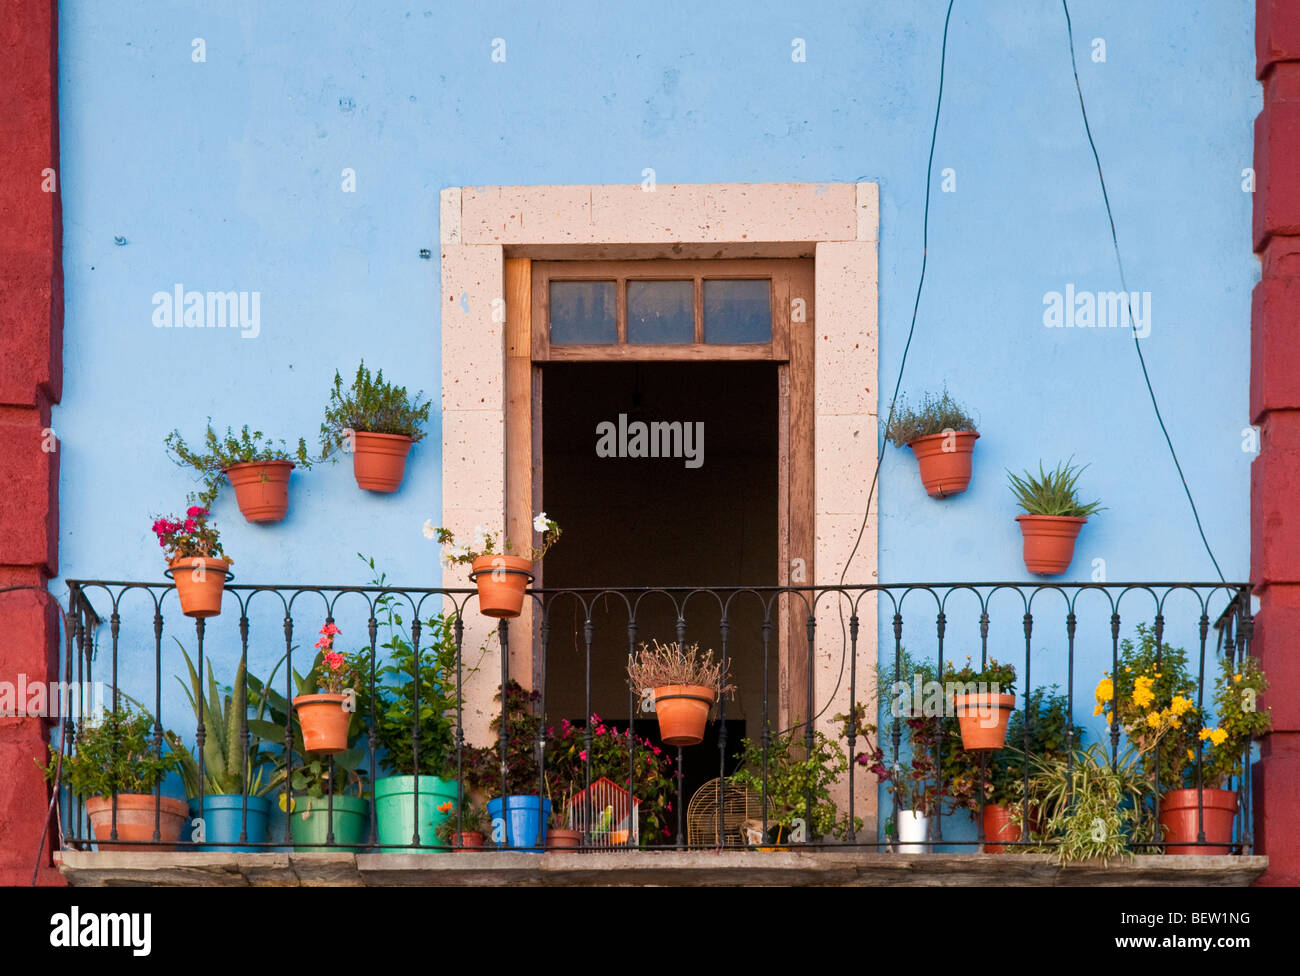 Flower pots on balcony of apartment in downtown Guanajuato, Mexico. - Stock Image